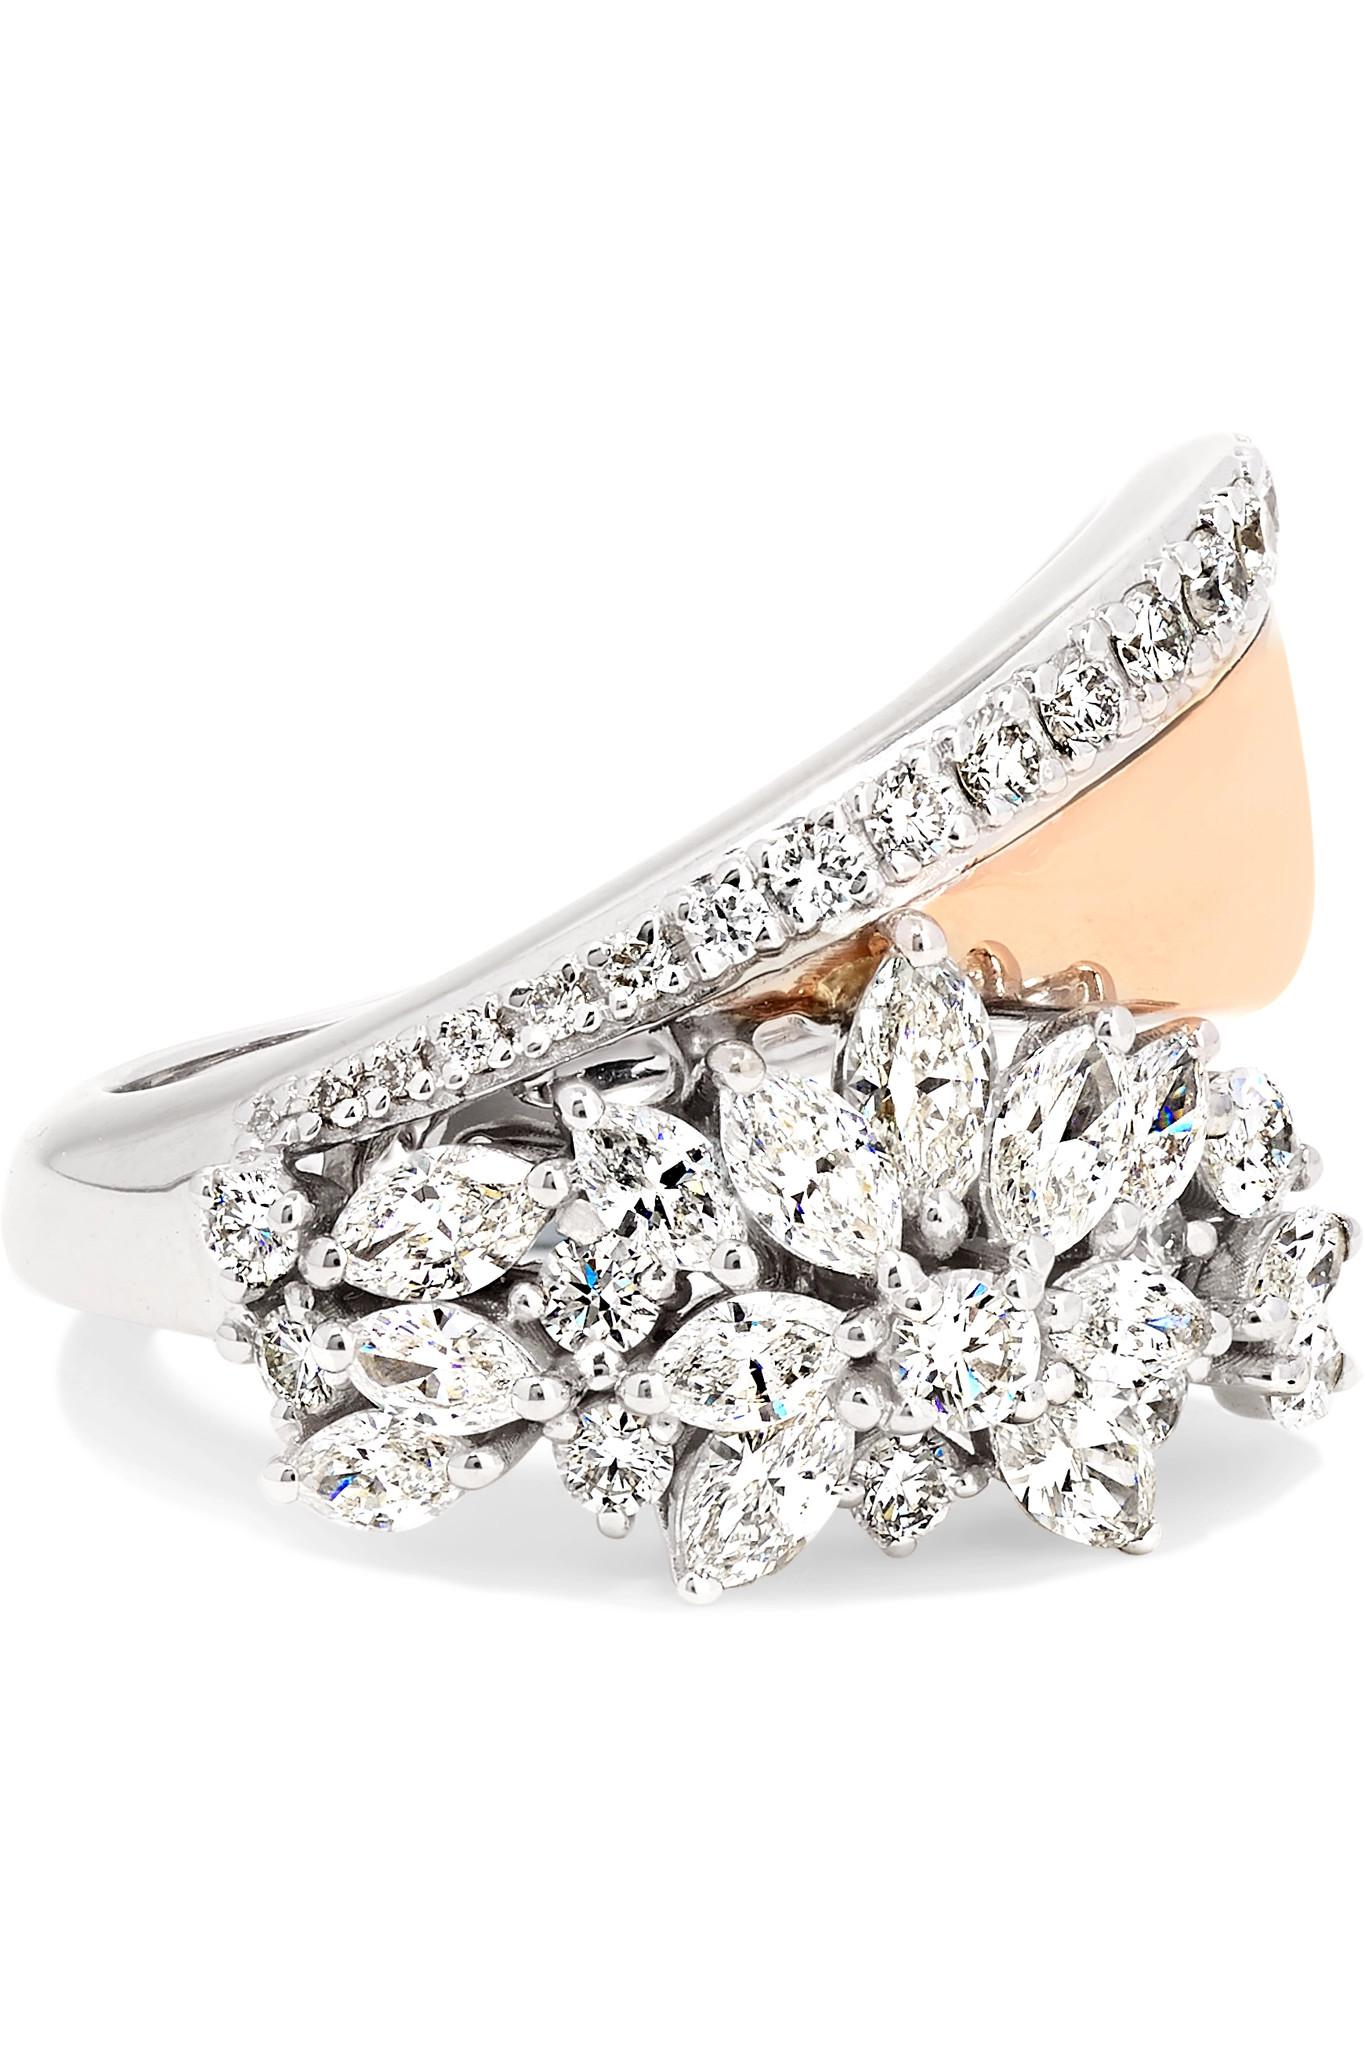 Yeprem 18-karat Rose And White Gold Diamond Ring - Rose gold OzdW6